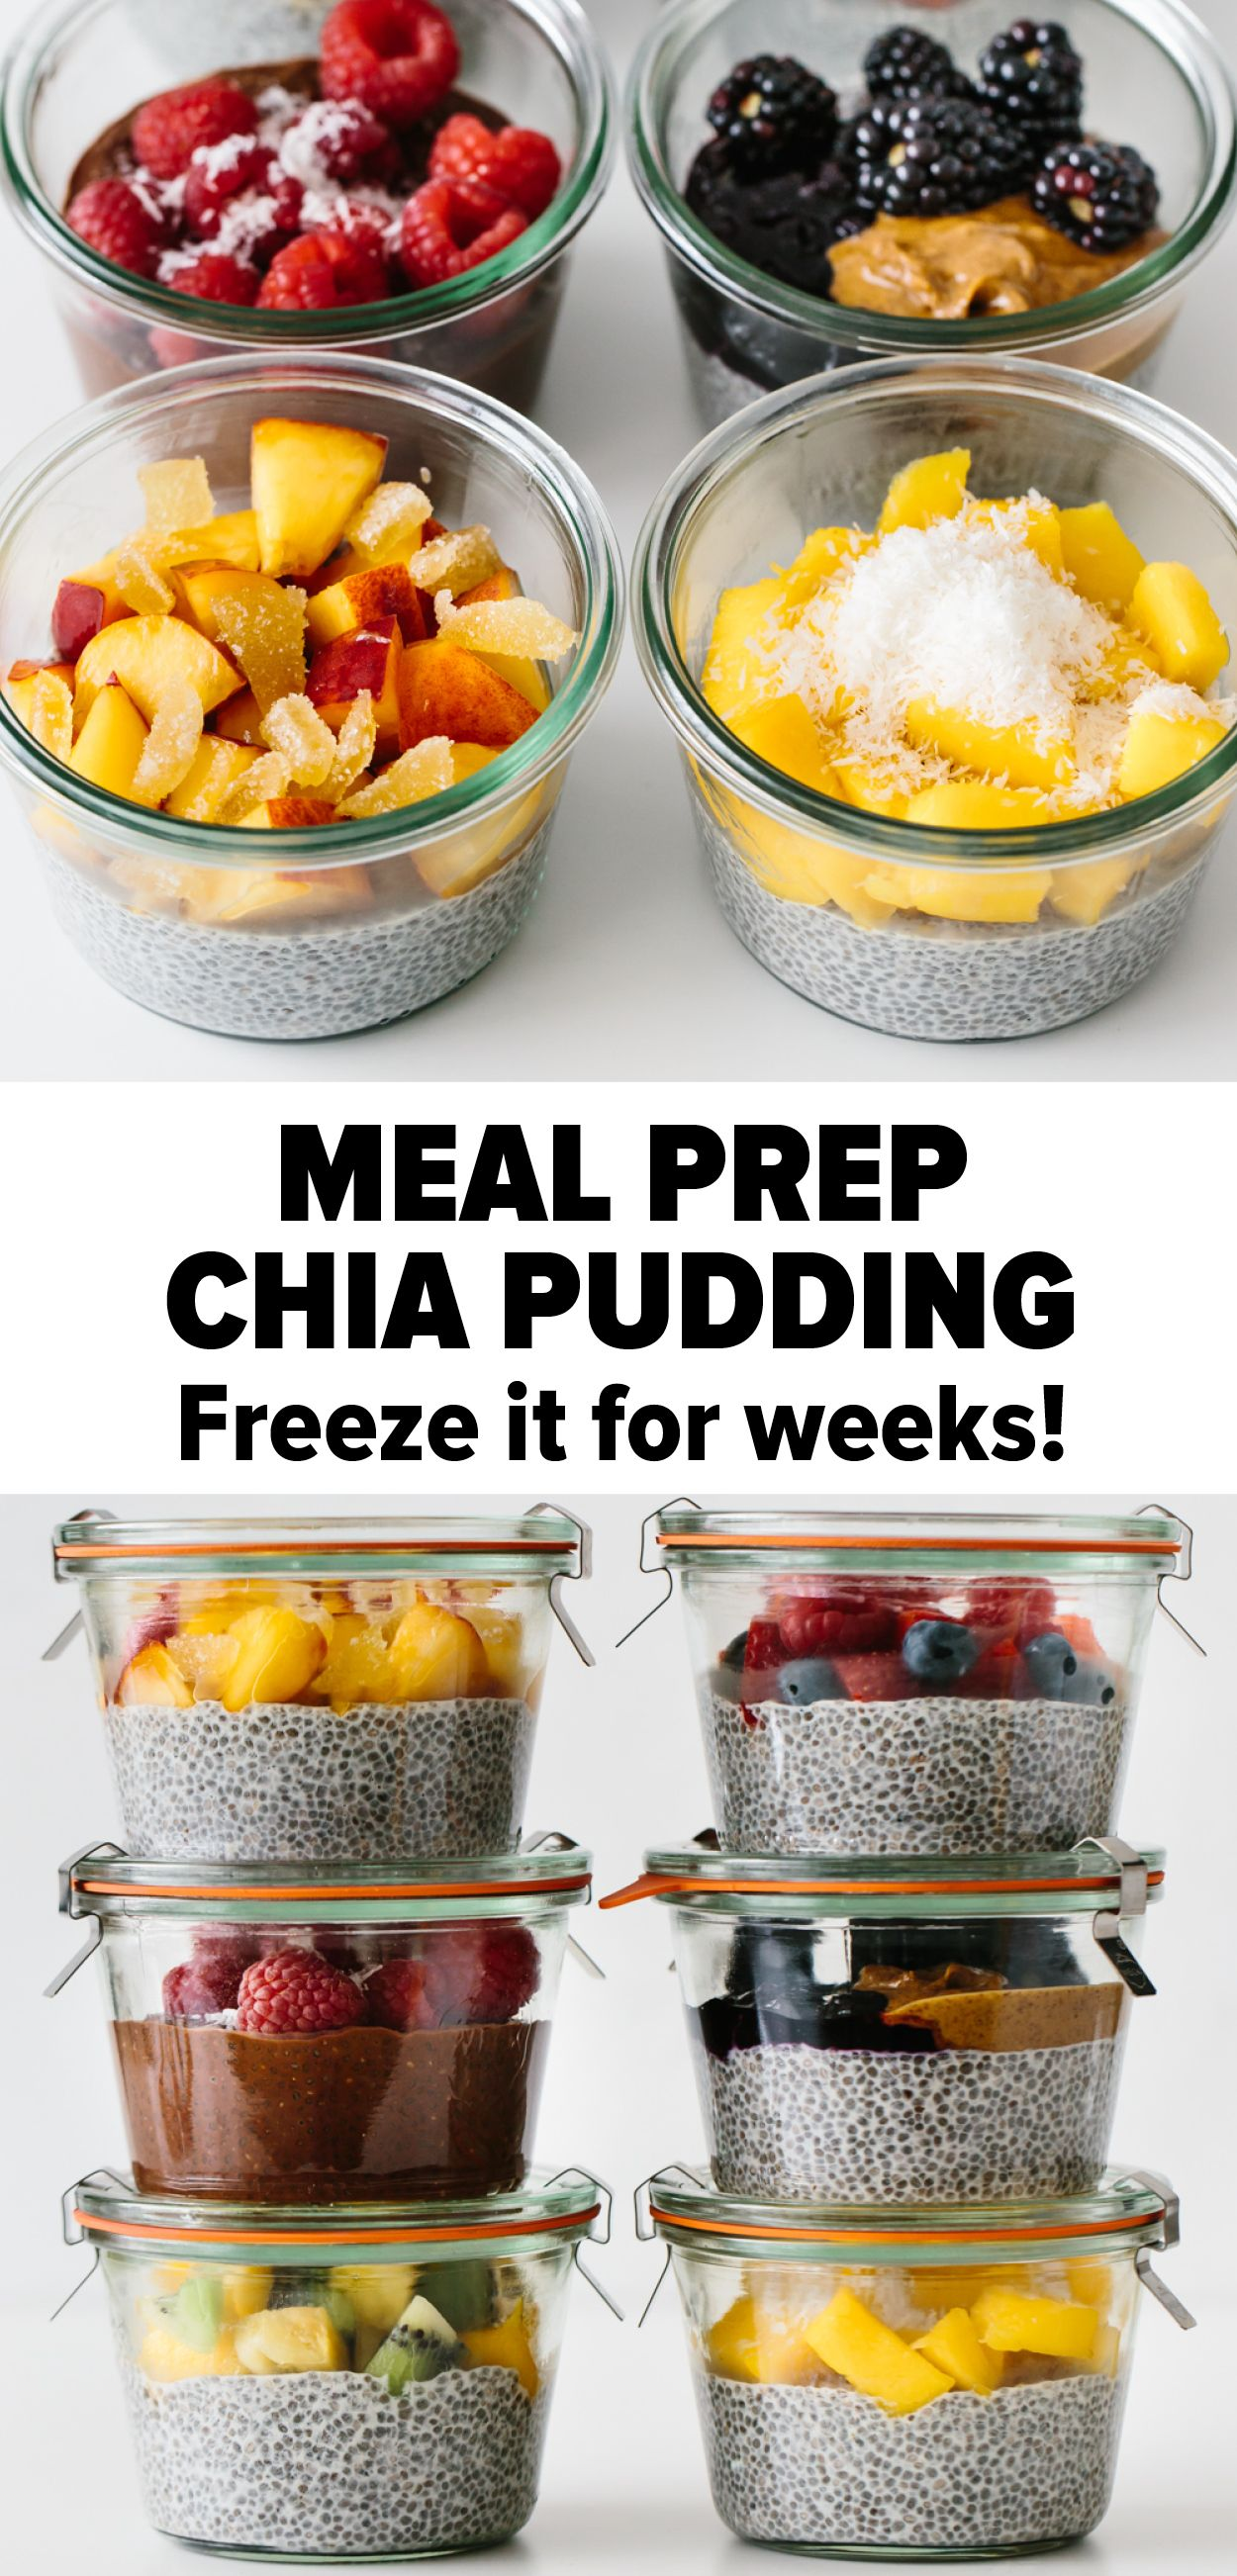 Meal Prep Chia Pudding - Freeze it for Weeks!  #chiaseedpudding